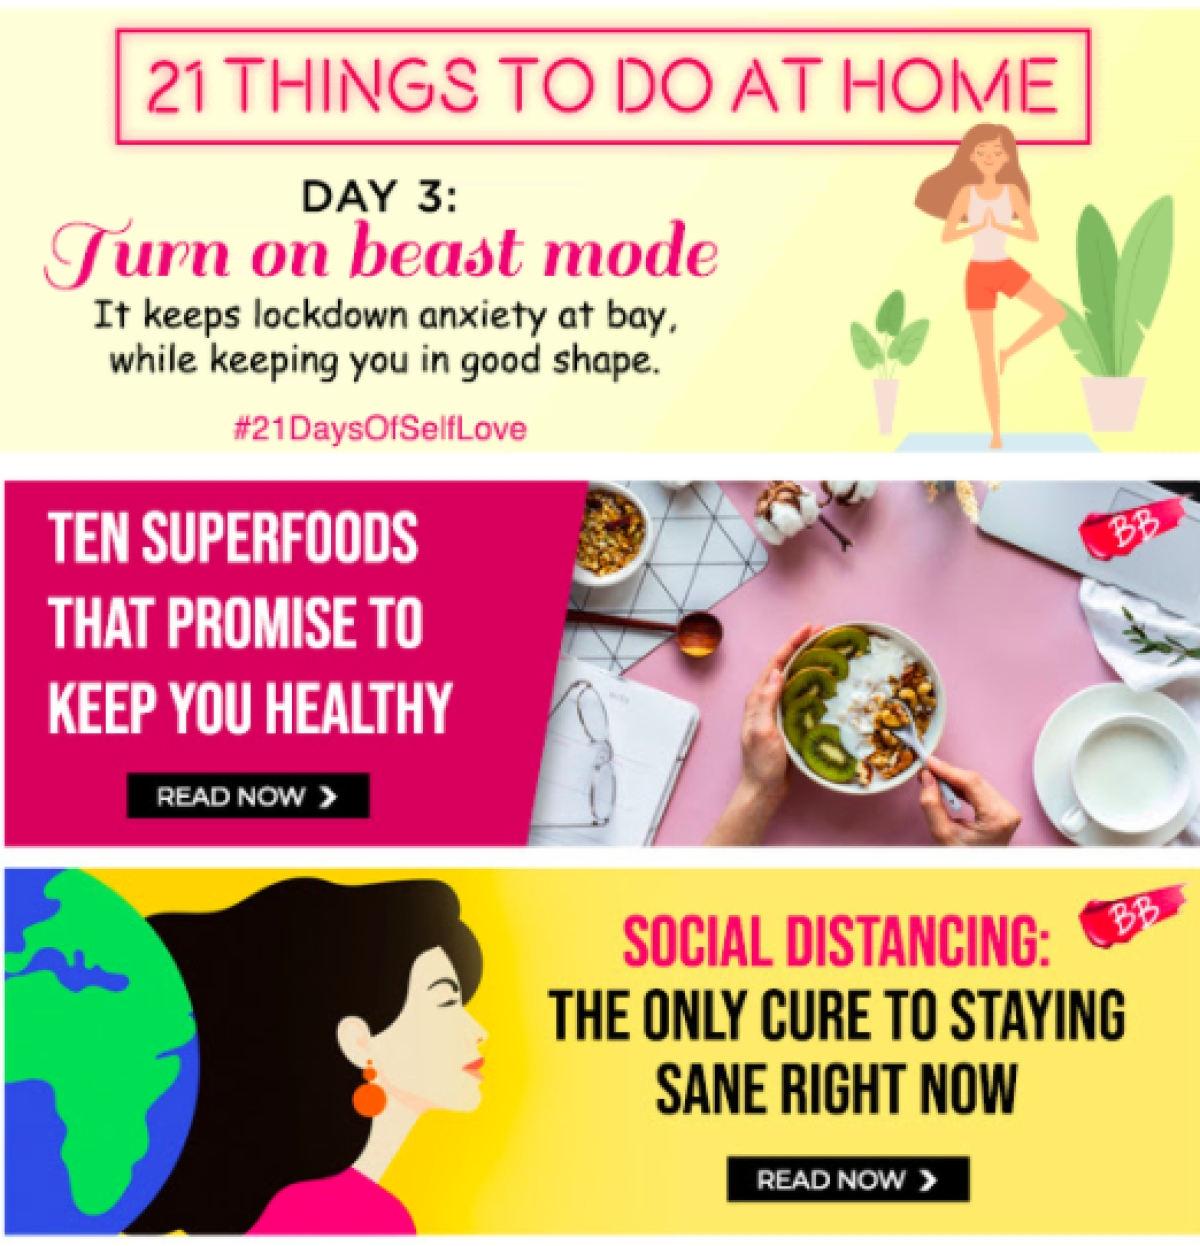 Nykaa mailers zoom in on skincare, healthcare and fitness during WFH